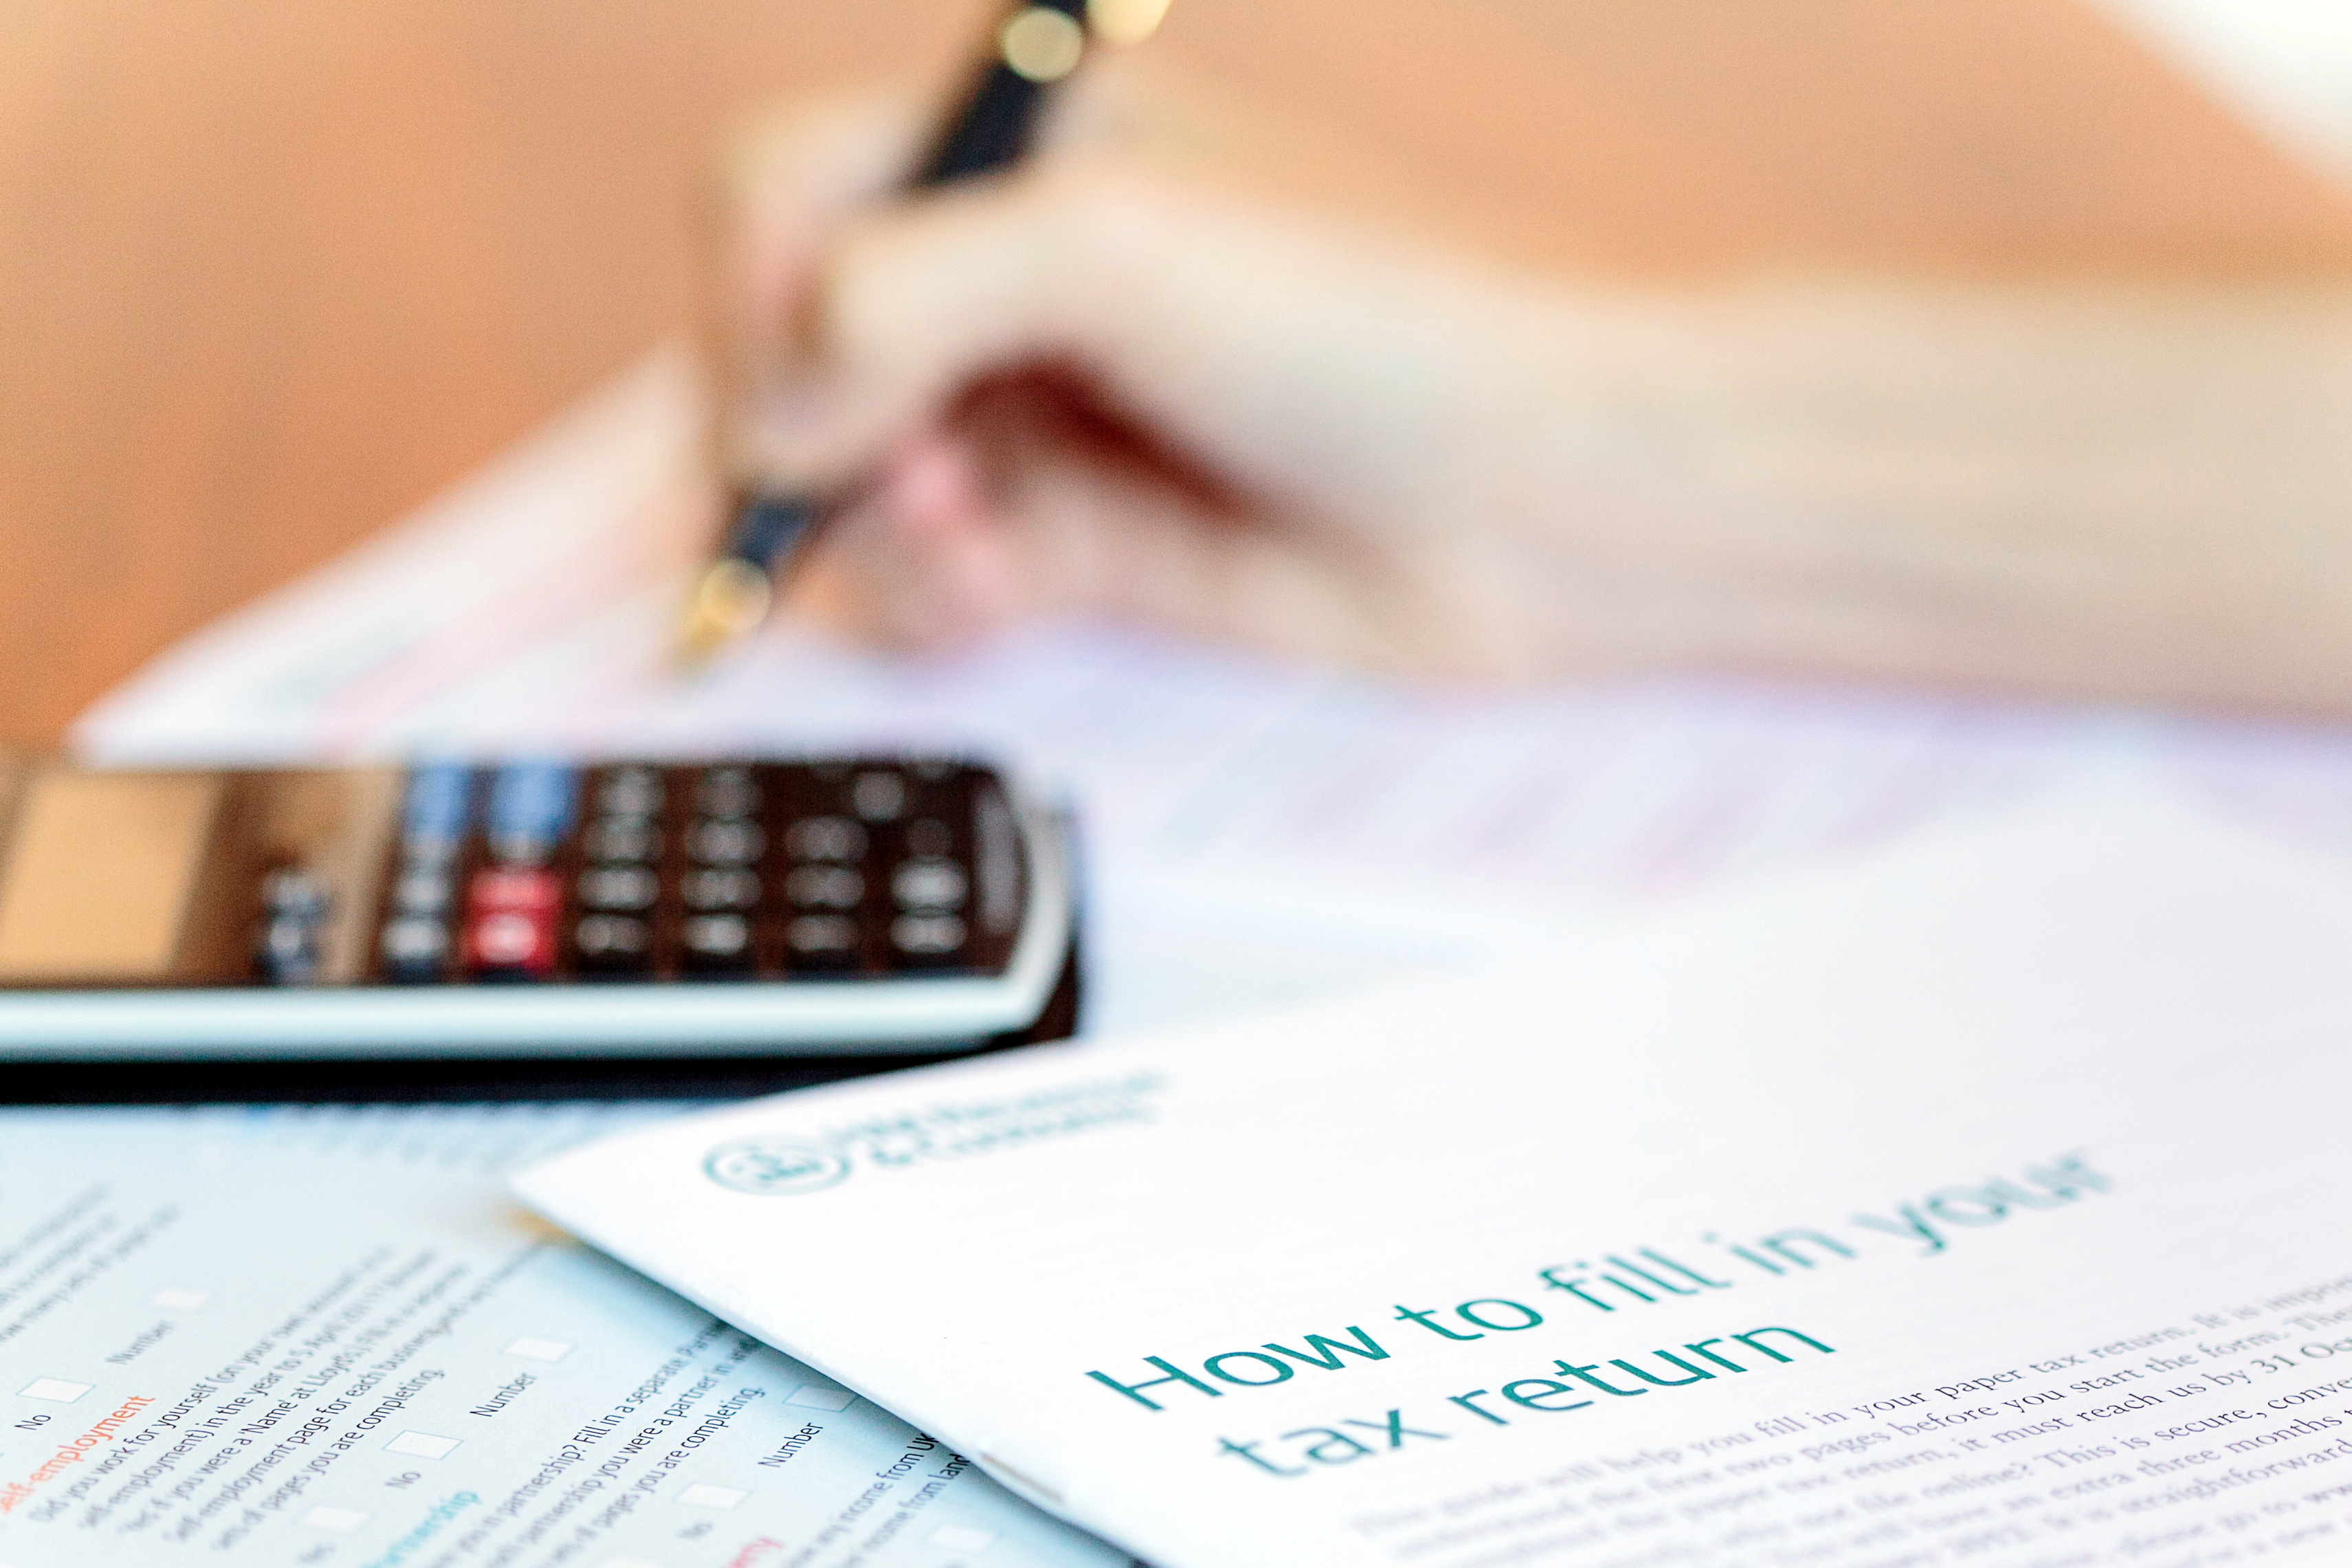 HMRC says it will accept Covid disruption as a reasonable excuse for missing the deadline